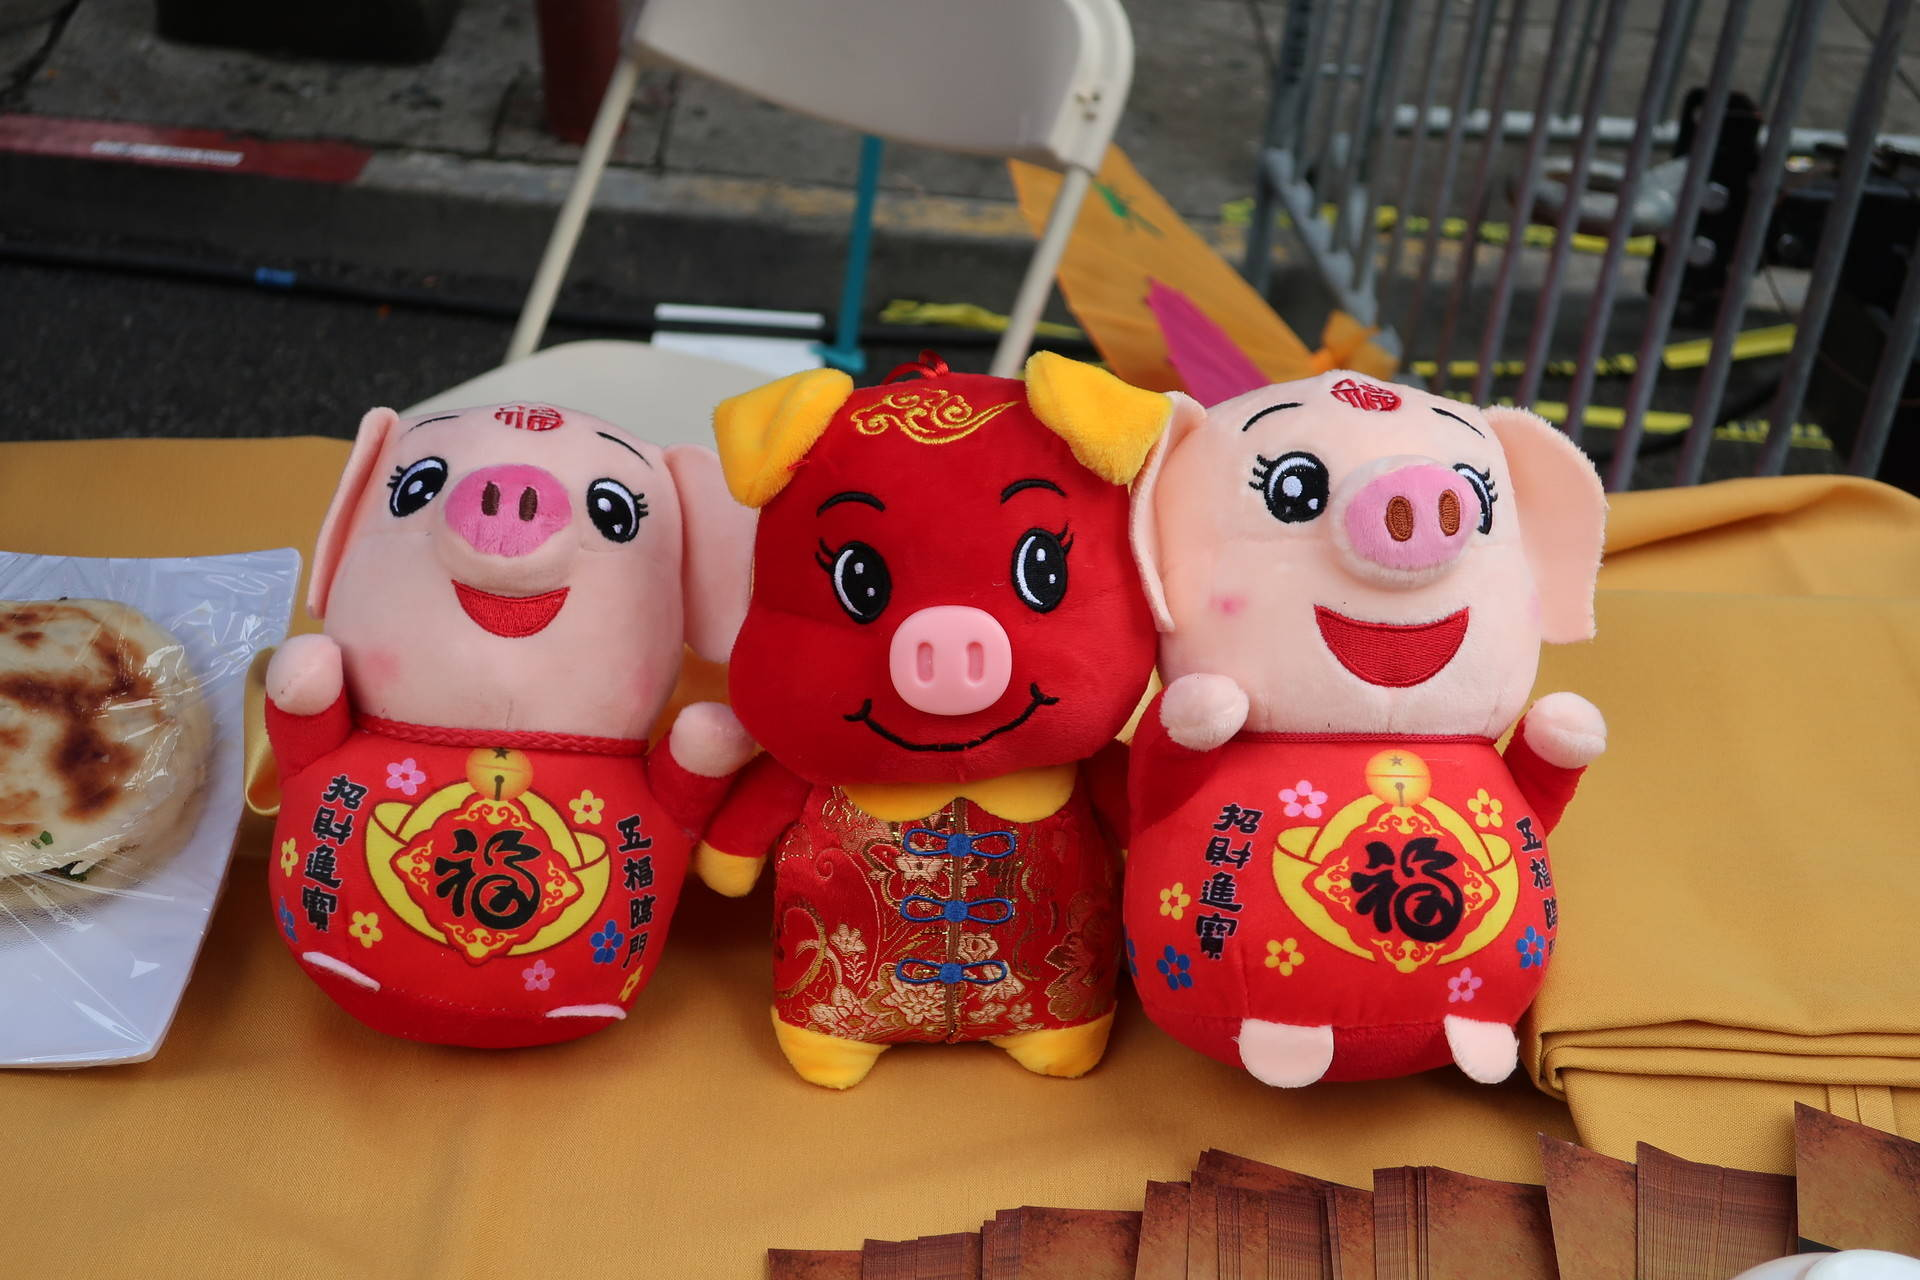 2019 is the Year of the Pig, which signifies prosperity and wealth.  Michelle Wiley/KQED